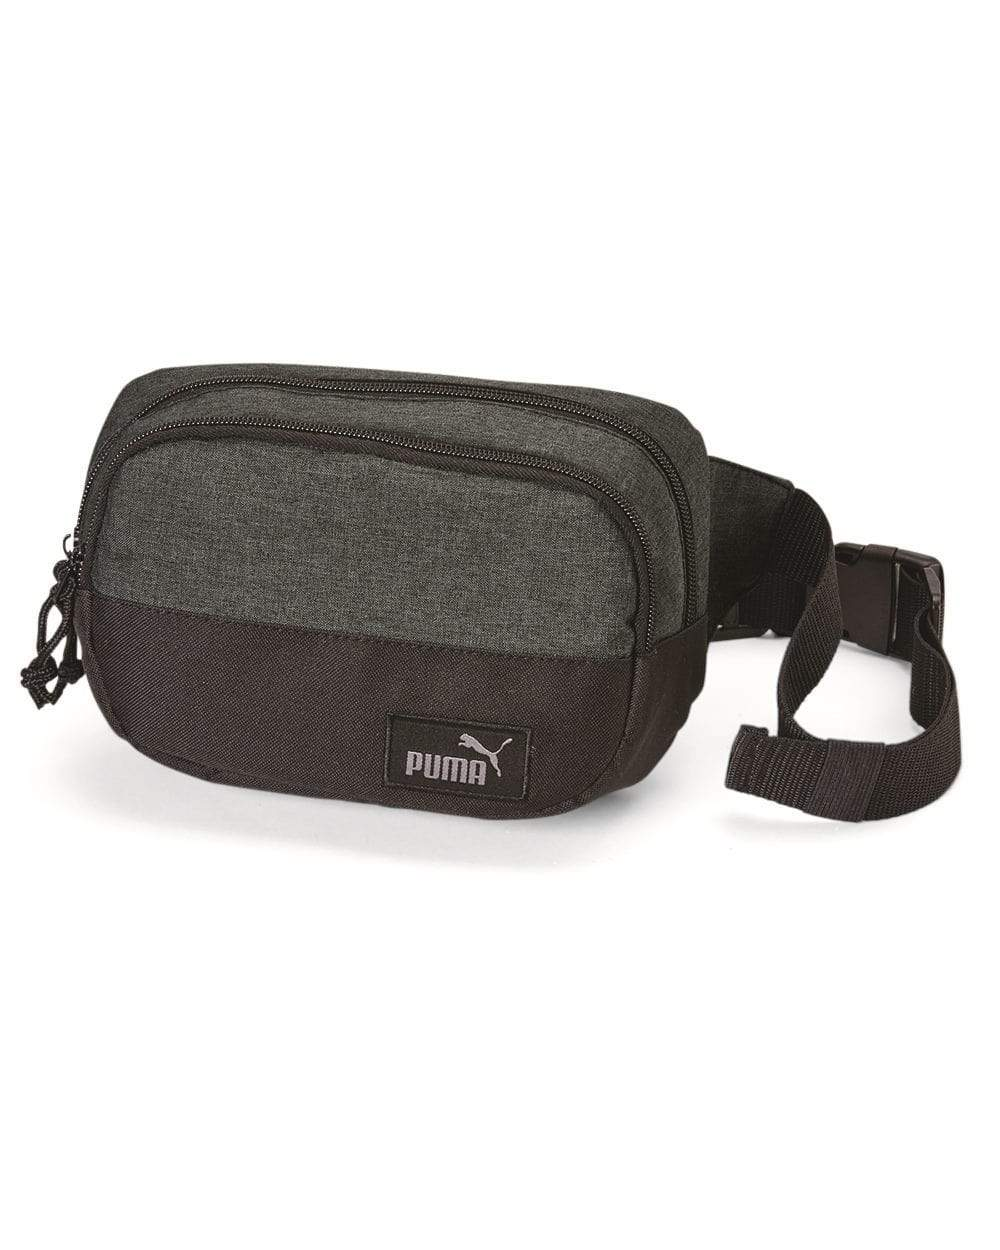 Puma Bags One Size / Heather grey Puma - Fanny Pack